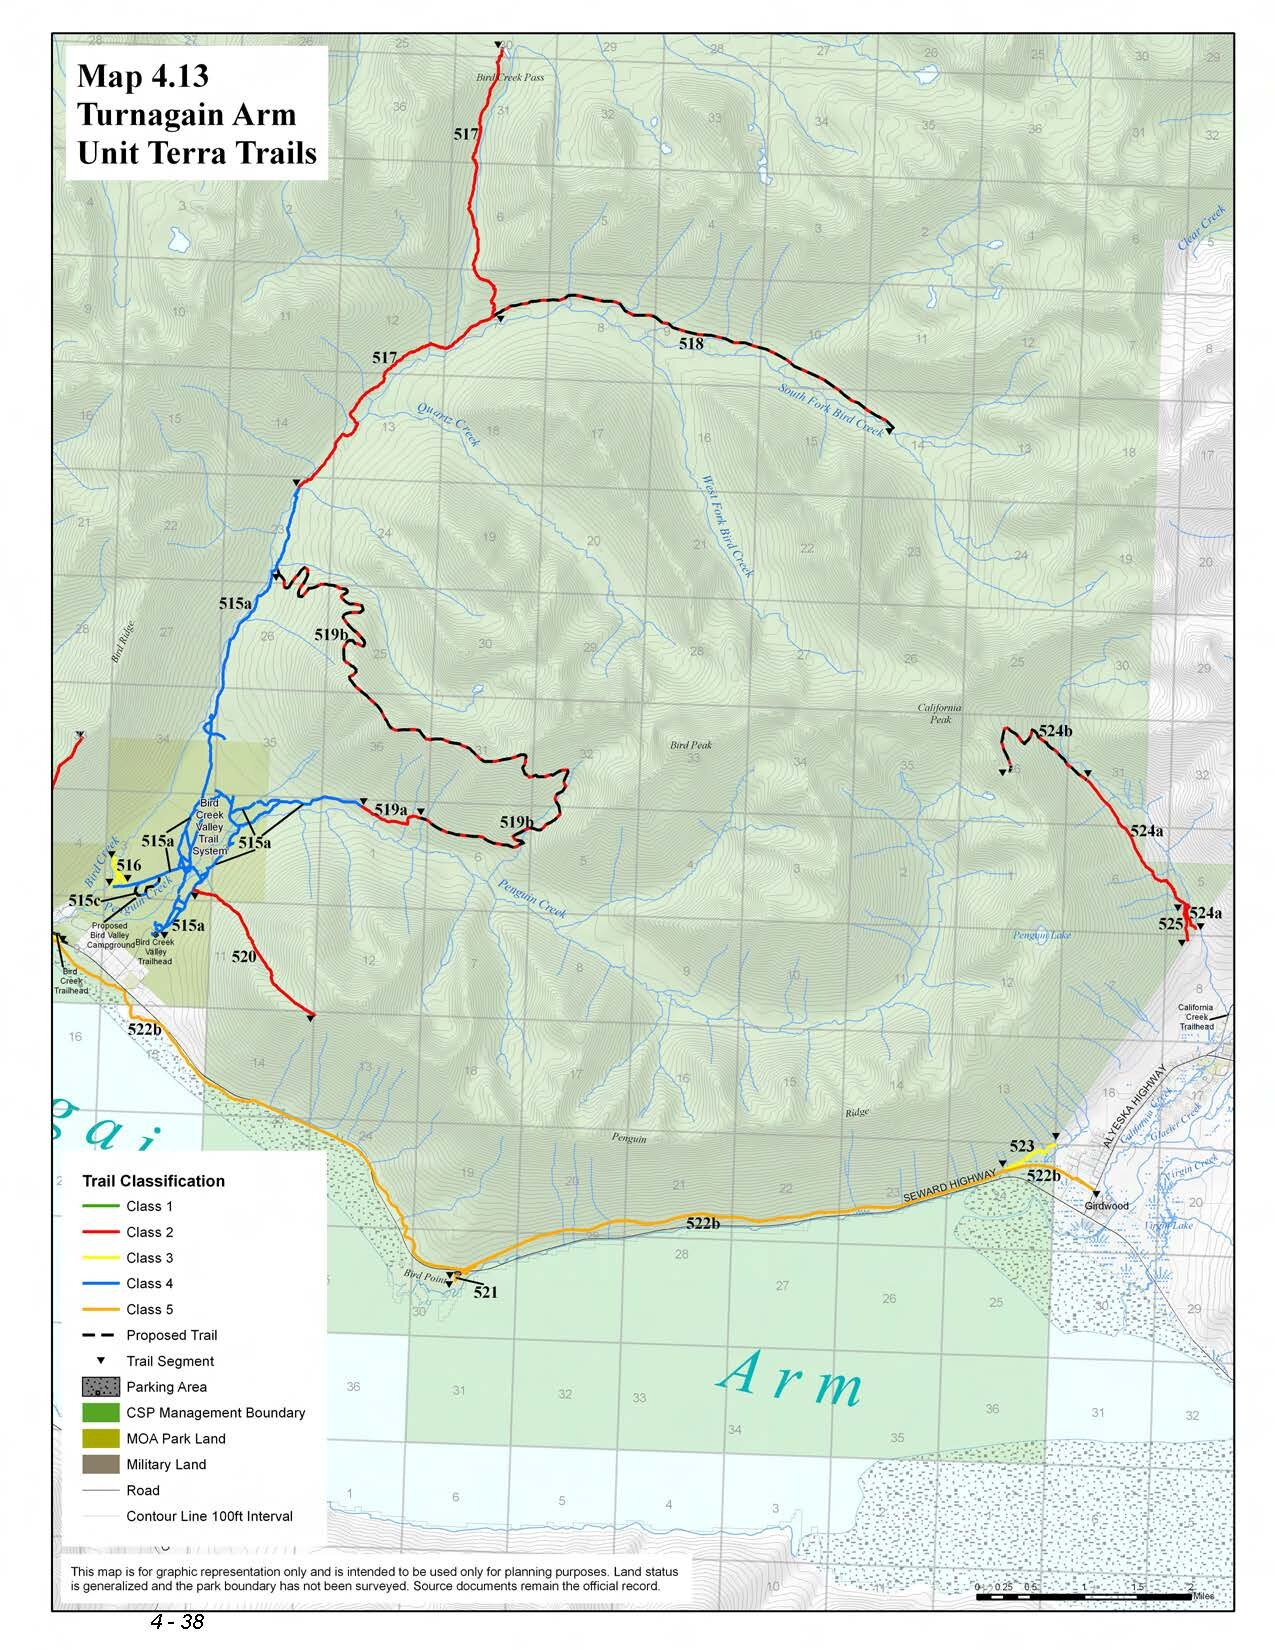 Trail Recommendation Map